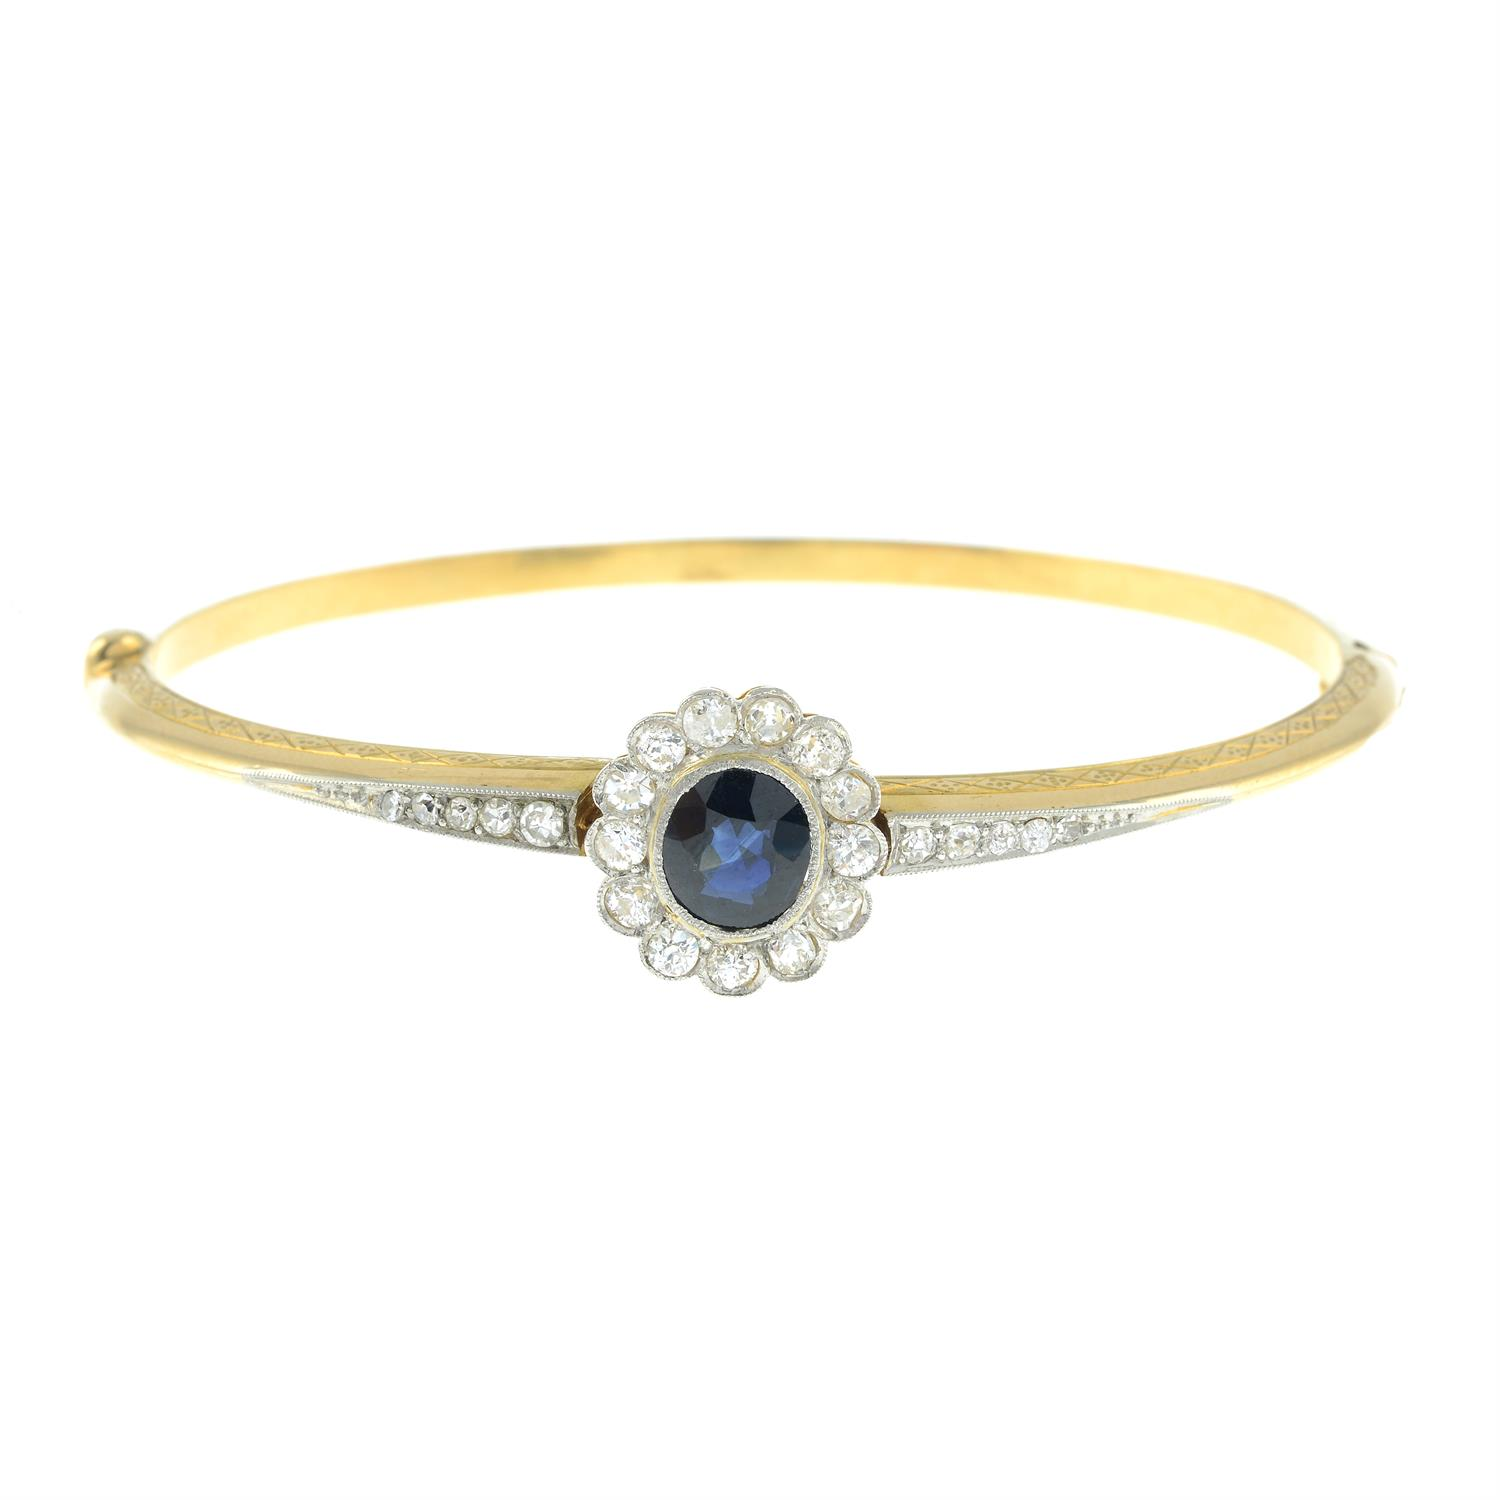 An early 20th century platinum and 18ct gold, sapphire and diamond cluster hinged bangle. - Image 2 of 3